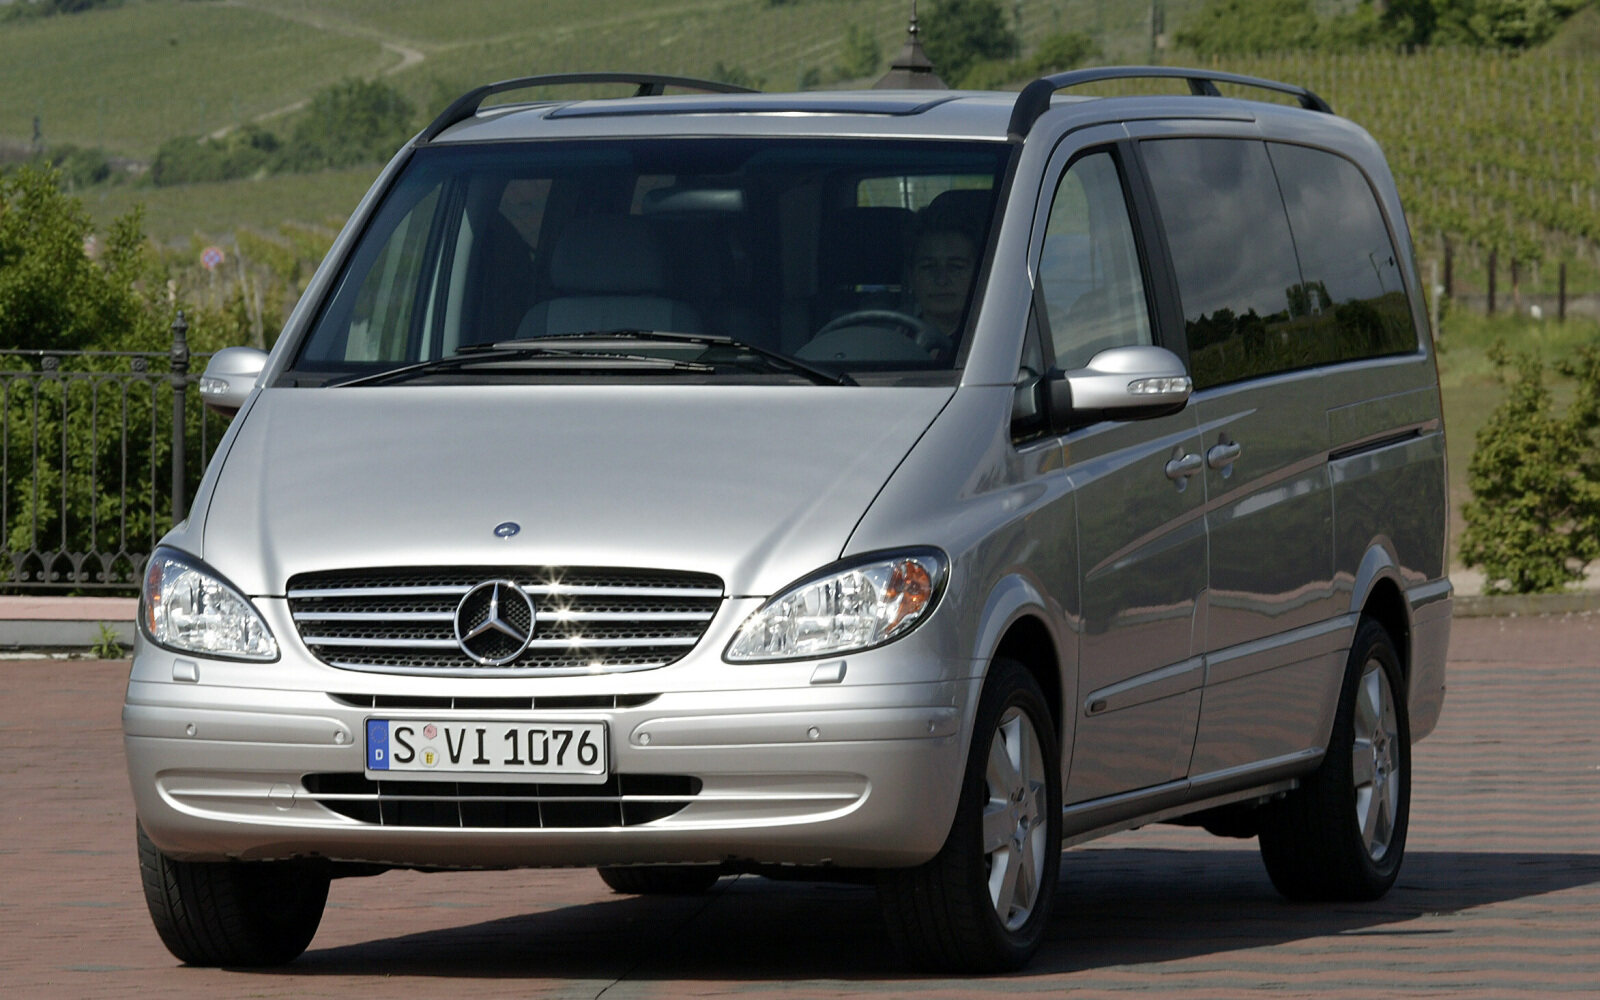 Private Transfer to/from Fatima/Lisbon